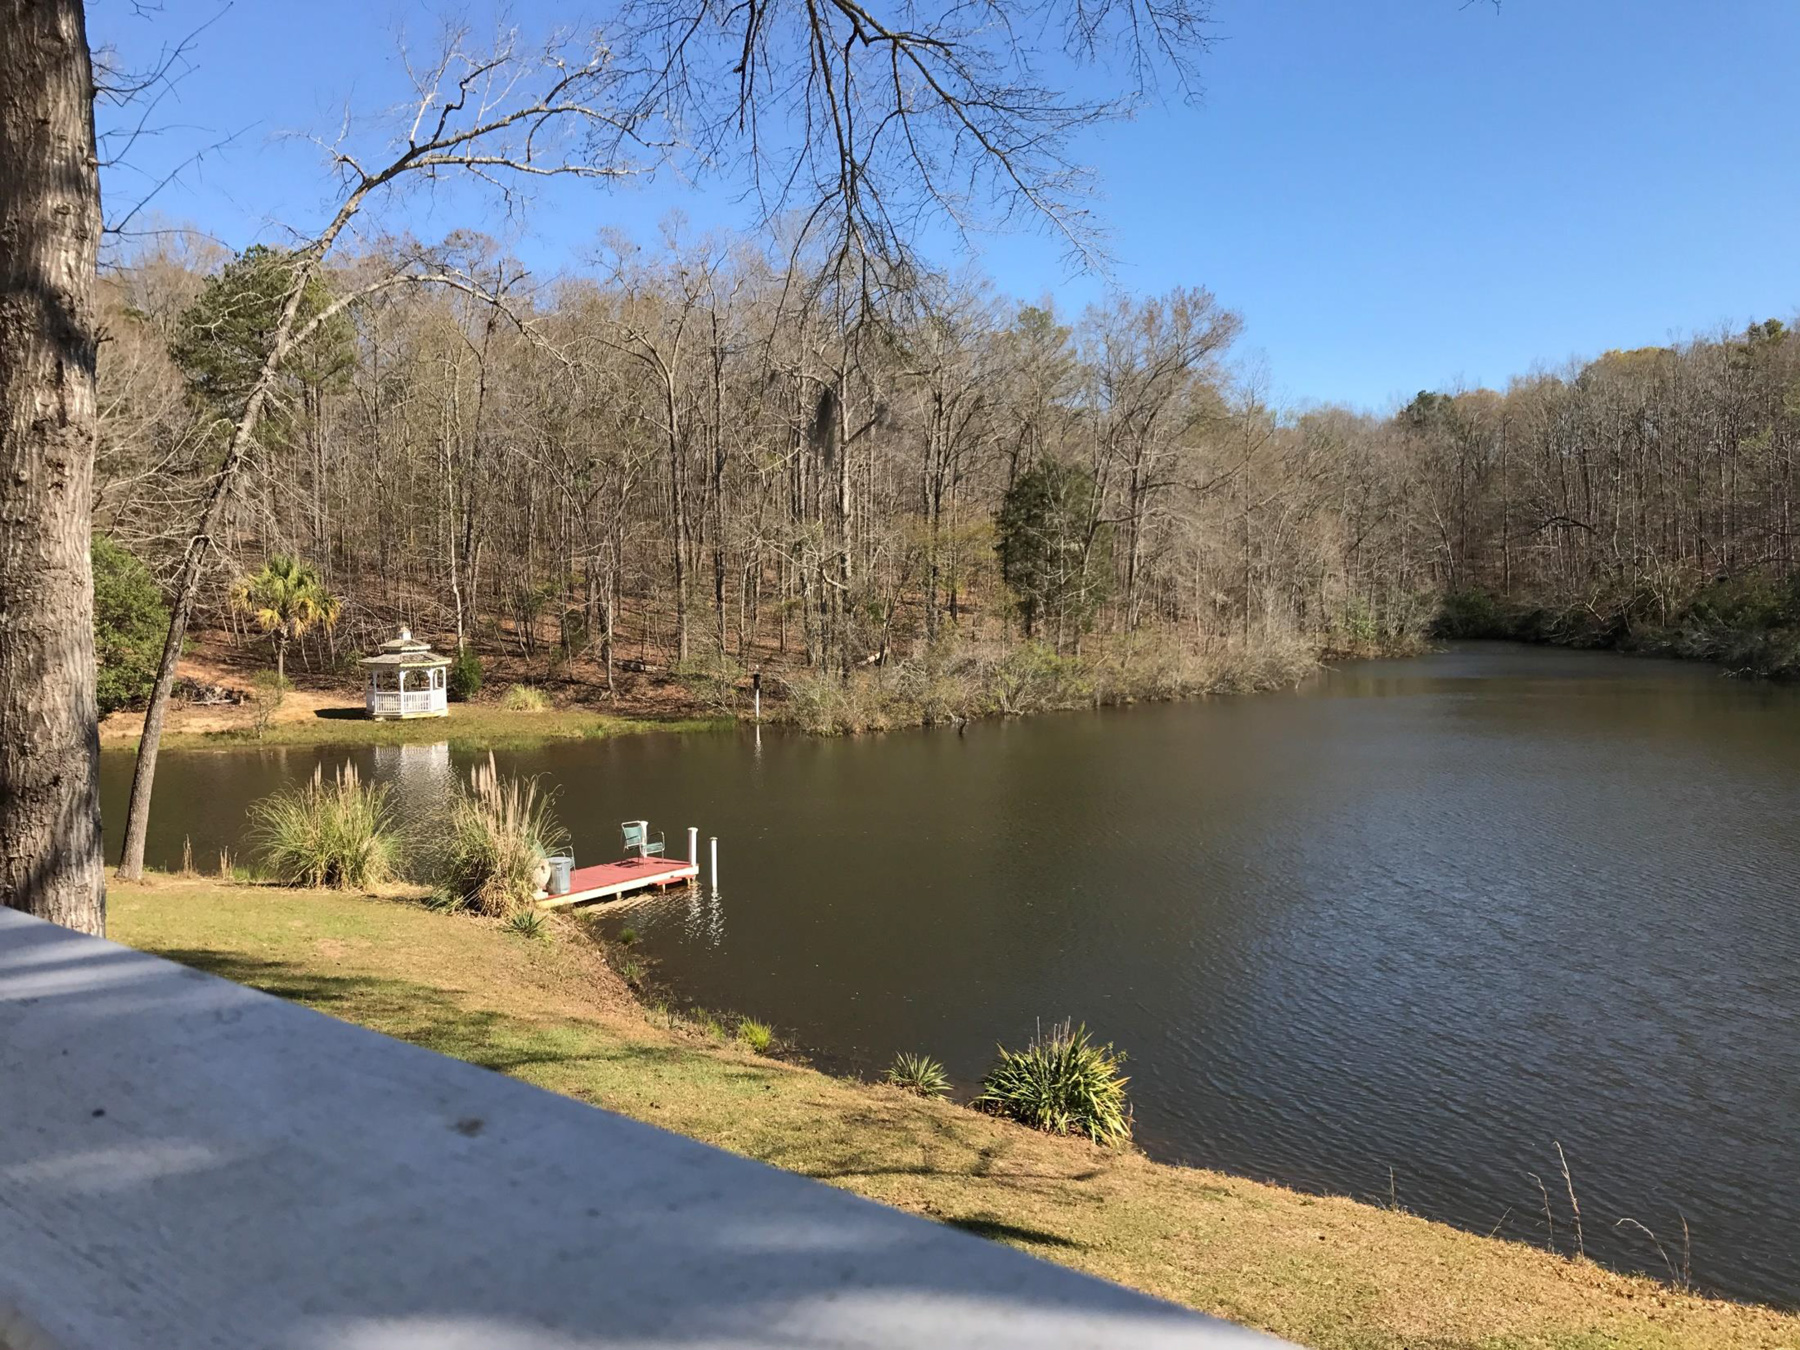 3riversrealty,plantation,middle-georgia-farm,secluded-living,private-get-away,mills-brock,georgia-land-for-sale,lake-view.jpg